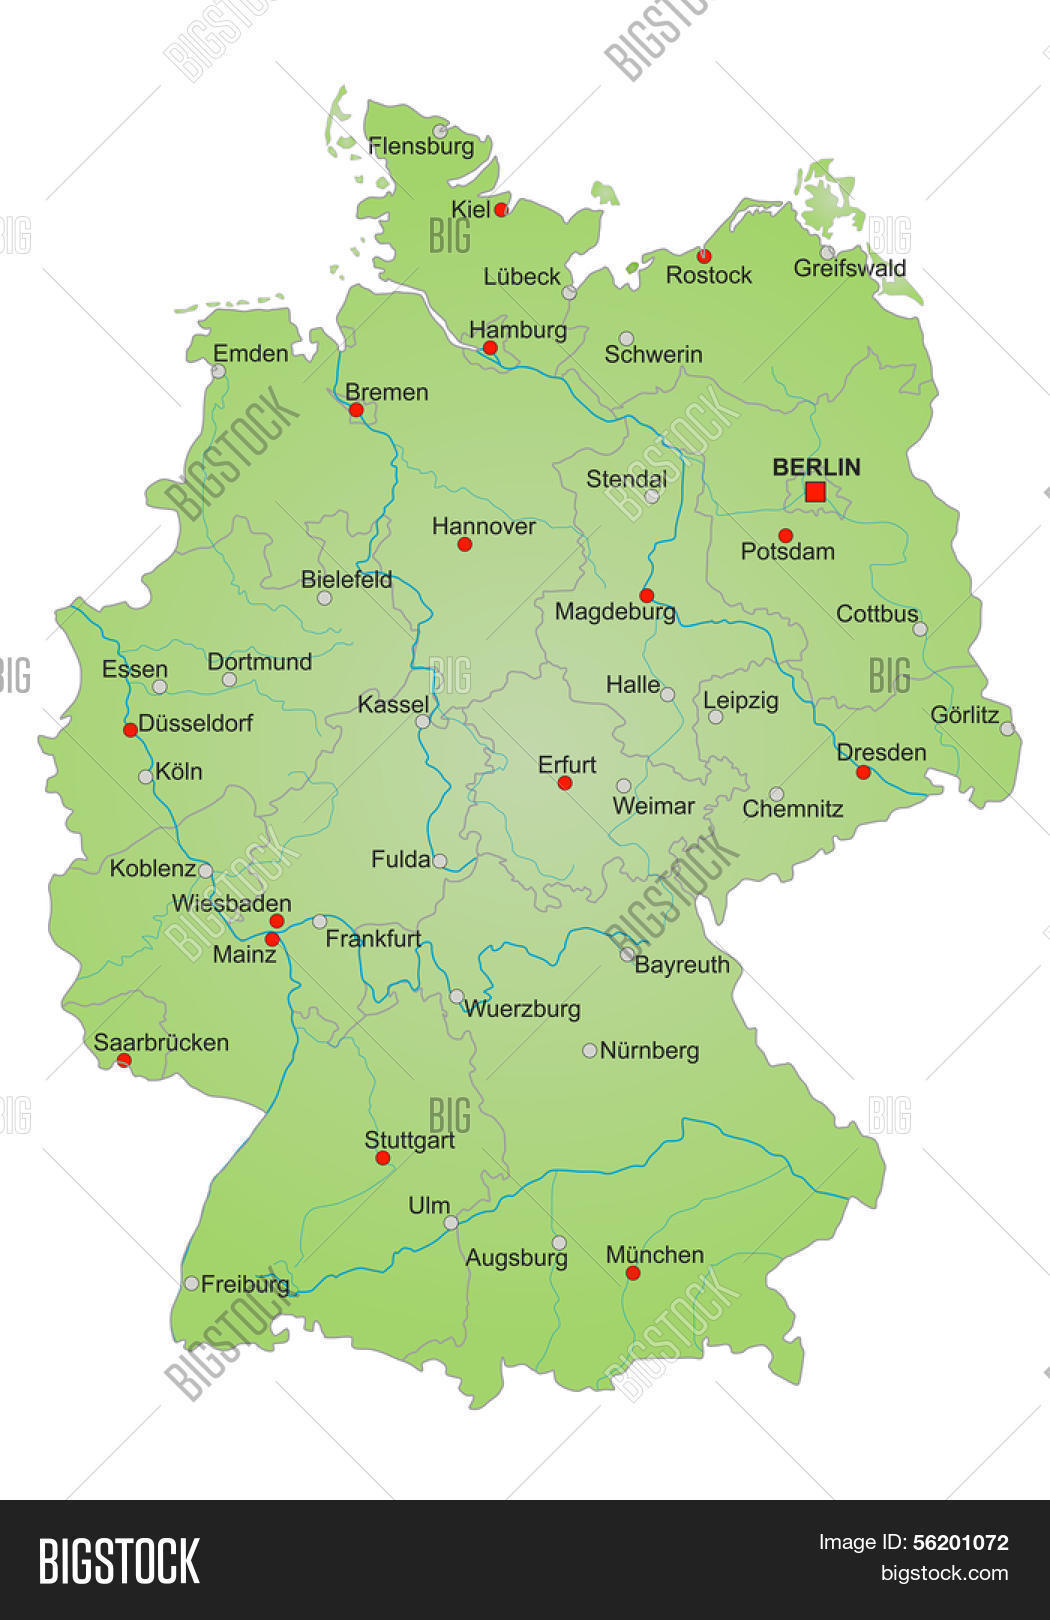 stylized map of germany showing states rivers and big cities city names in german